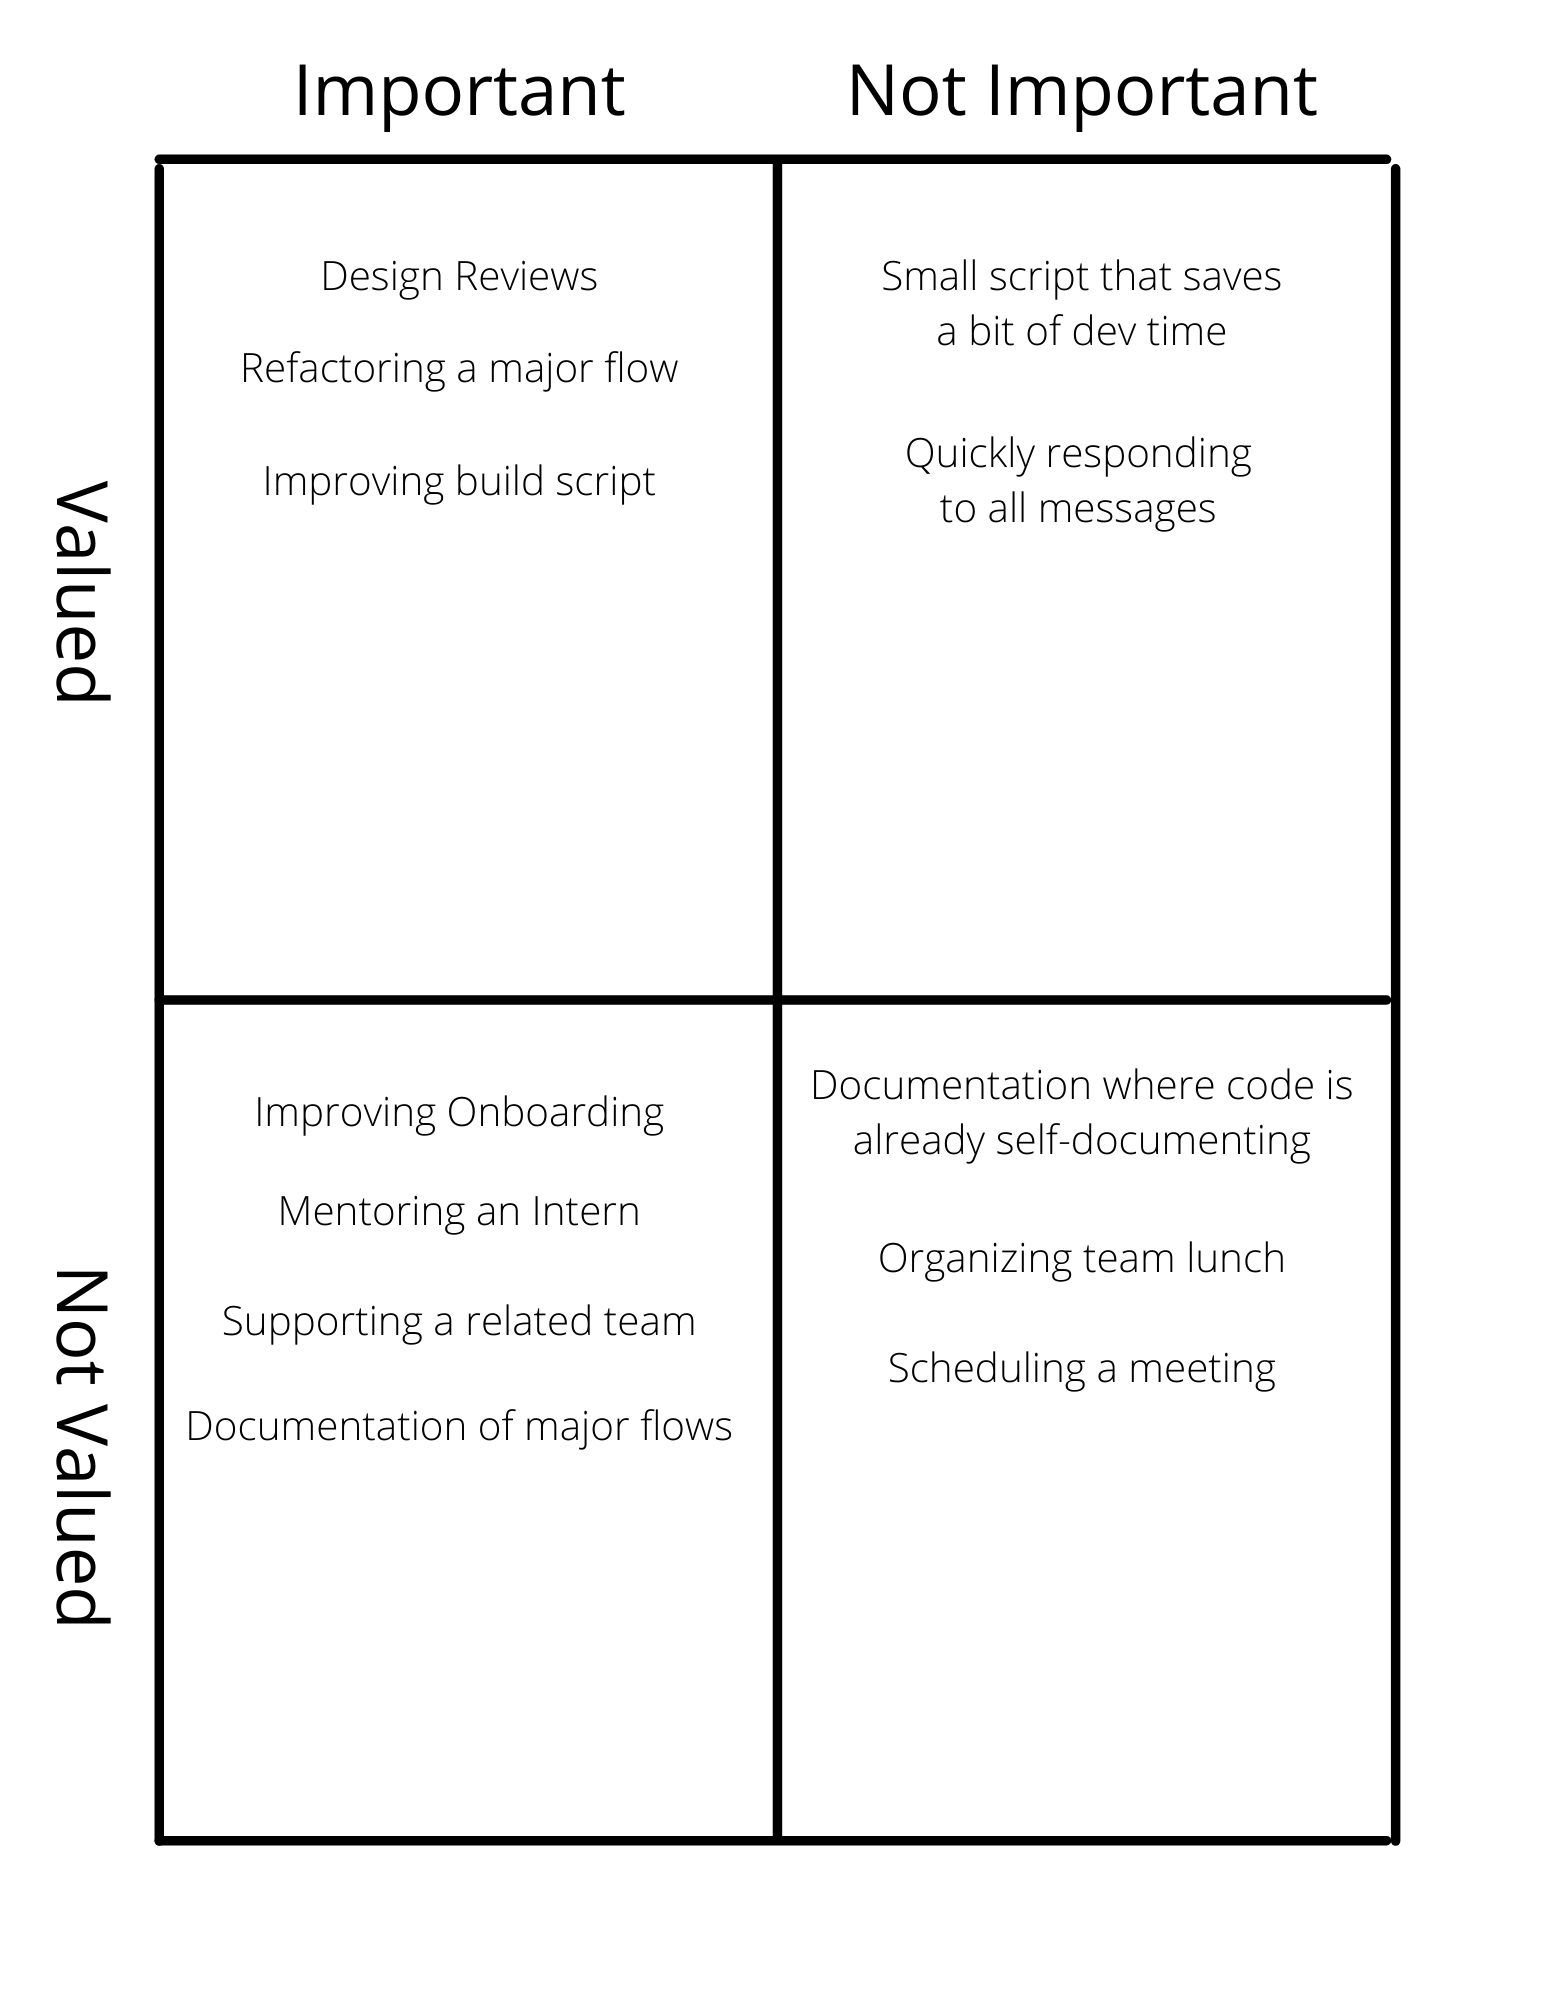 Design Reviews and Coding are important and valued while documentation and organizing meetings is undervalued.